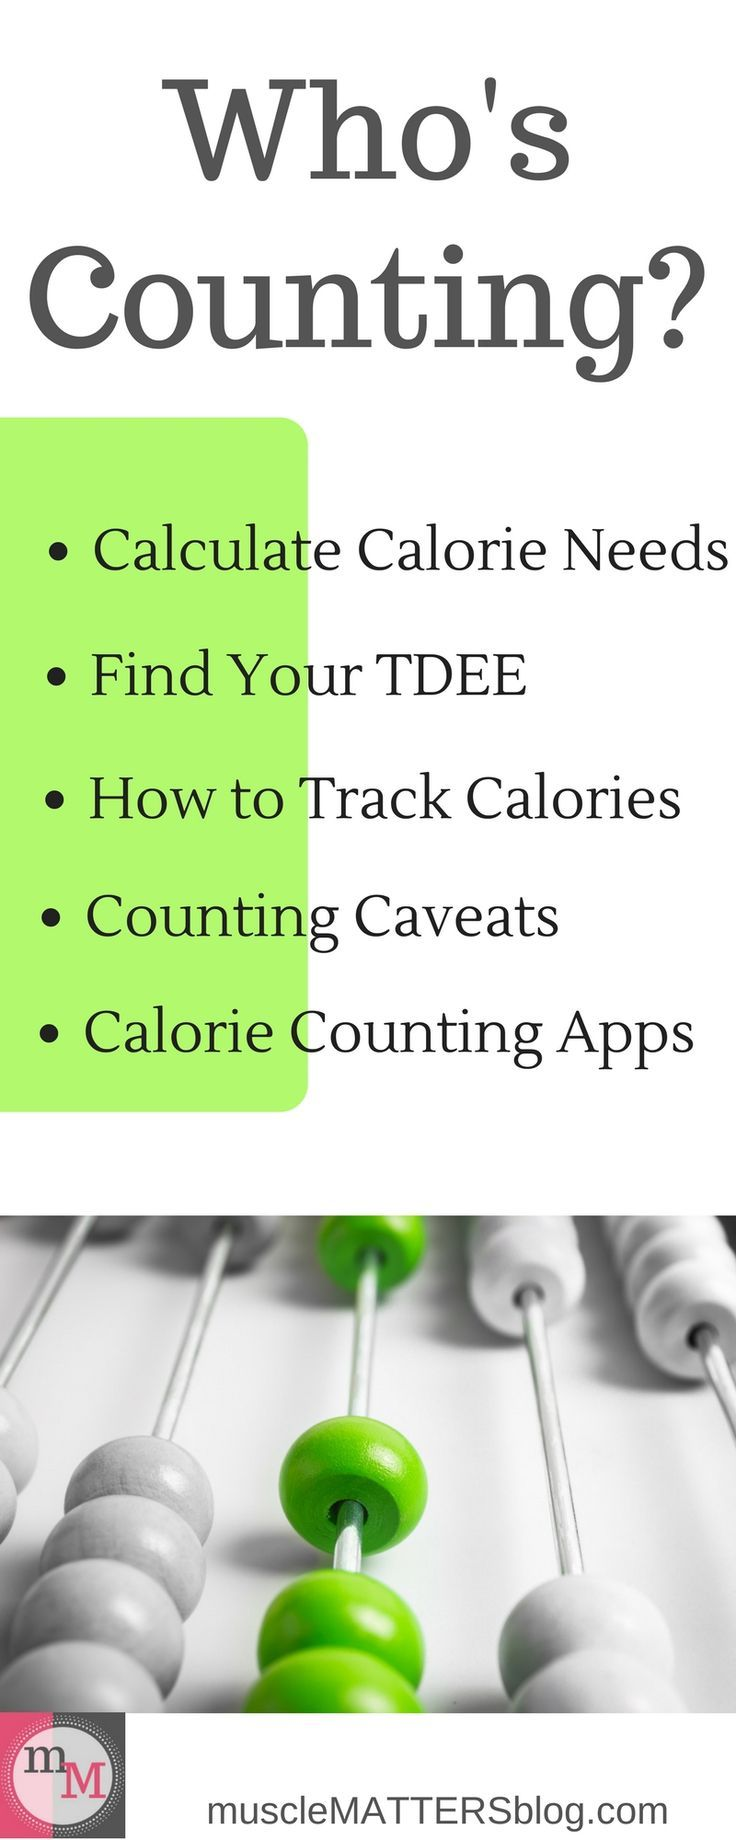 Who's Counting? | Your weight loss source for tracking calories and flexible dieting. Everything you need to know, from calculating the amount of calories you need, to calorie tracking apps, you'll find it all here. Click the image above to begin losing weight in the most efficient way possible.